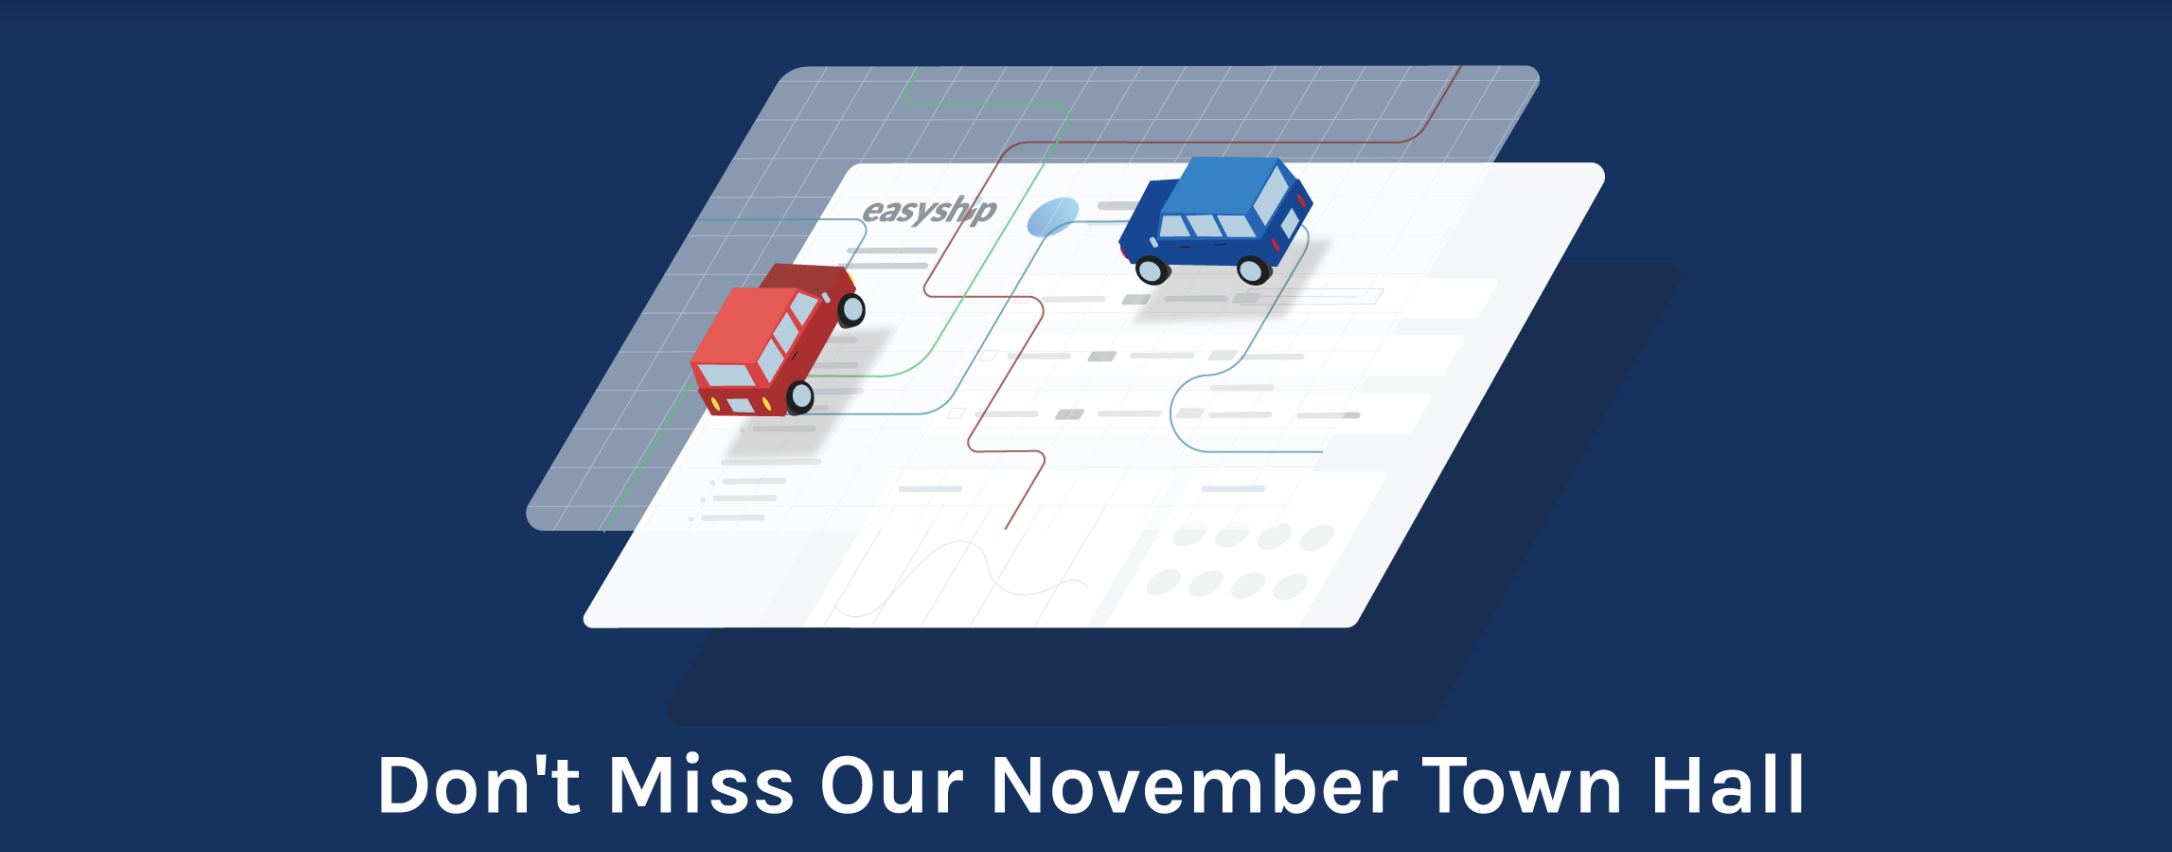 November Product Update: Easyship Town Hall